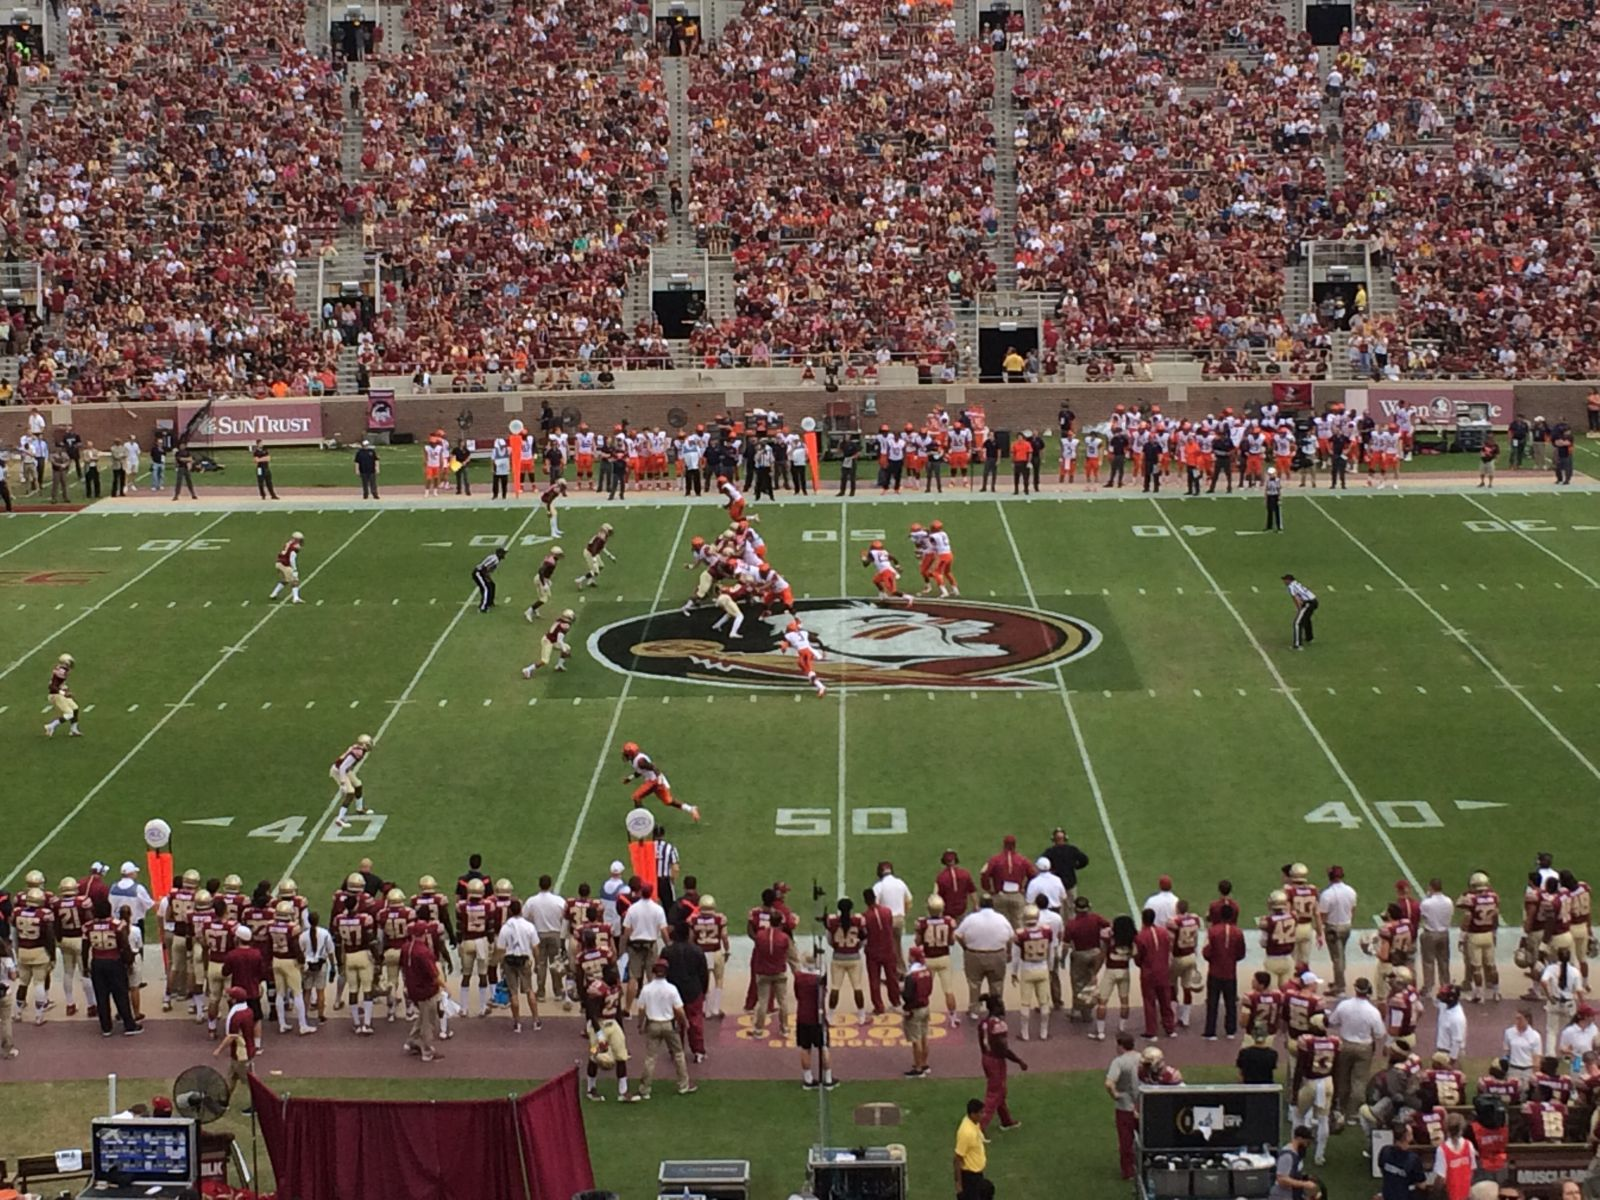 Section 33 seat view